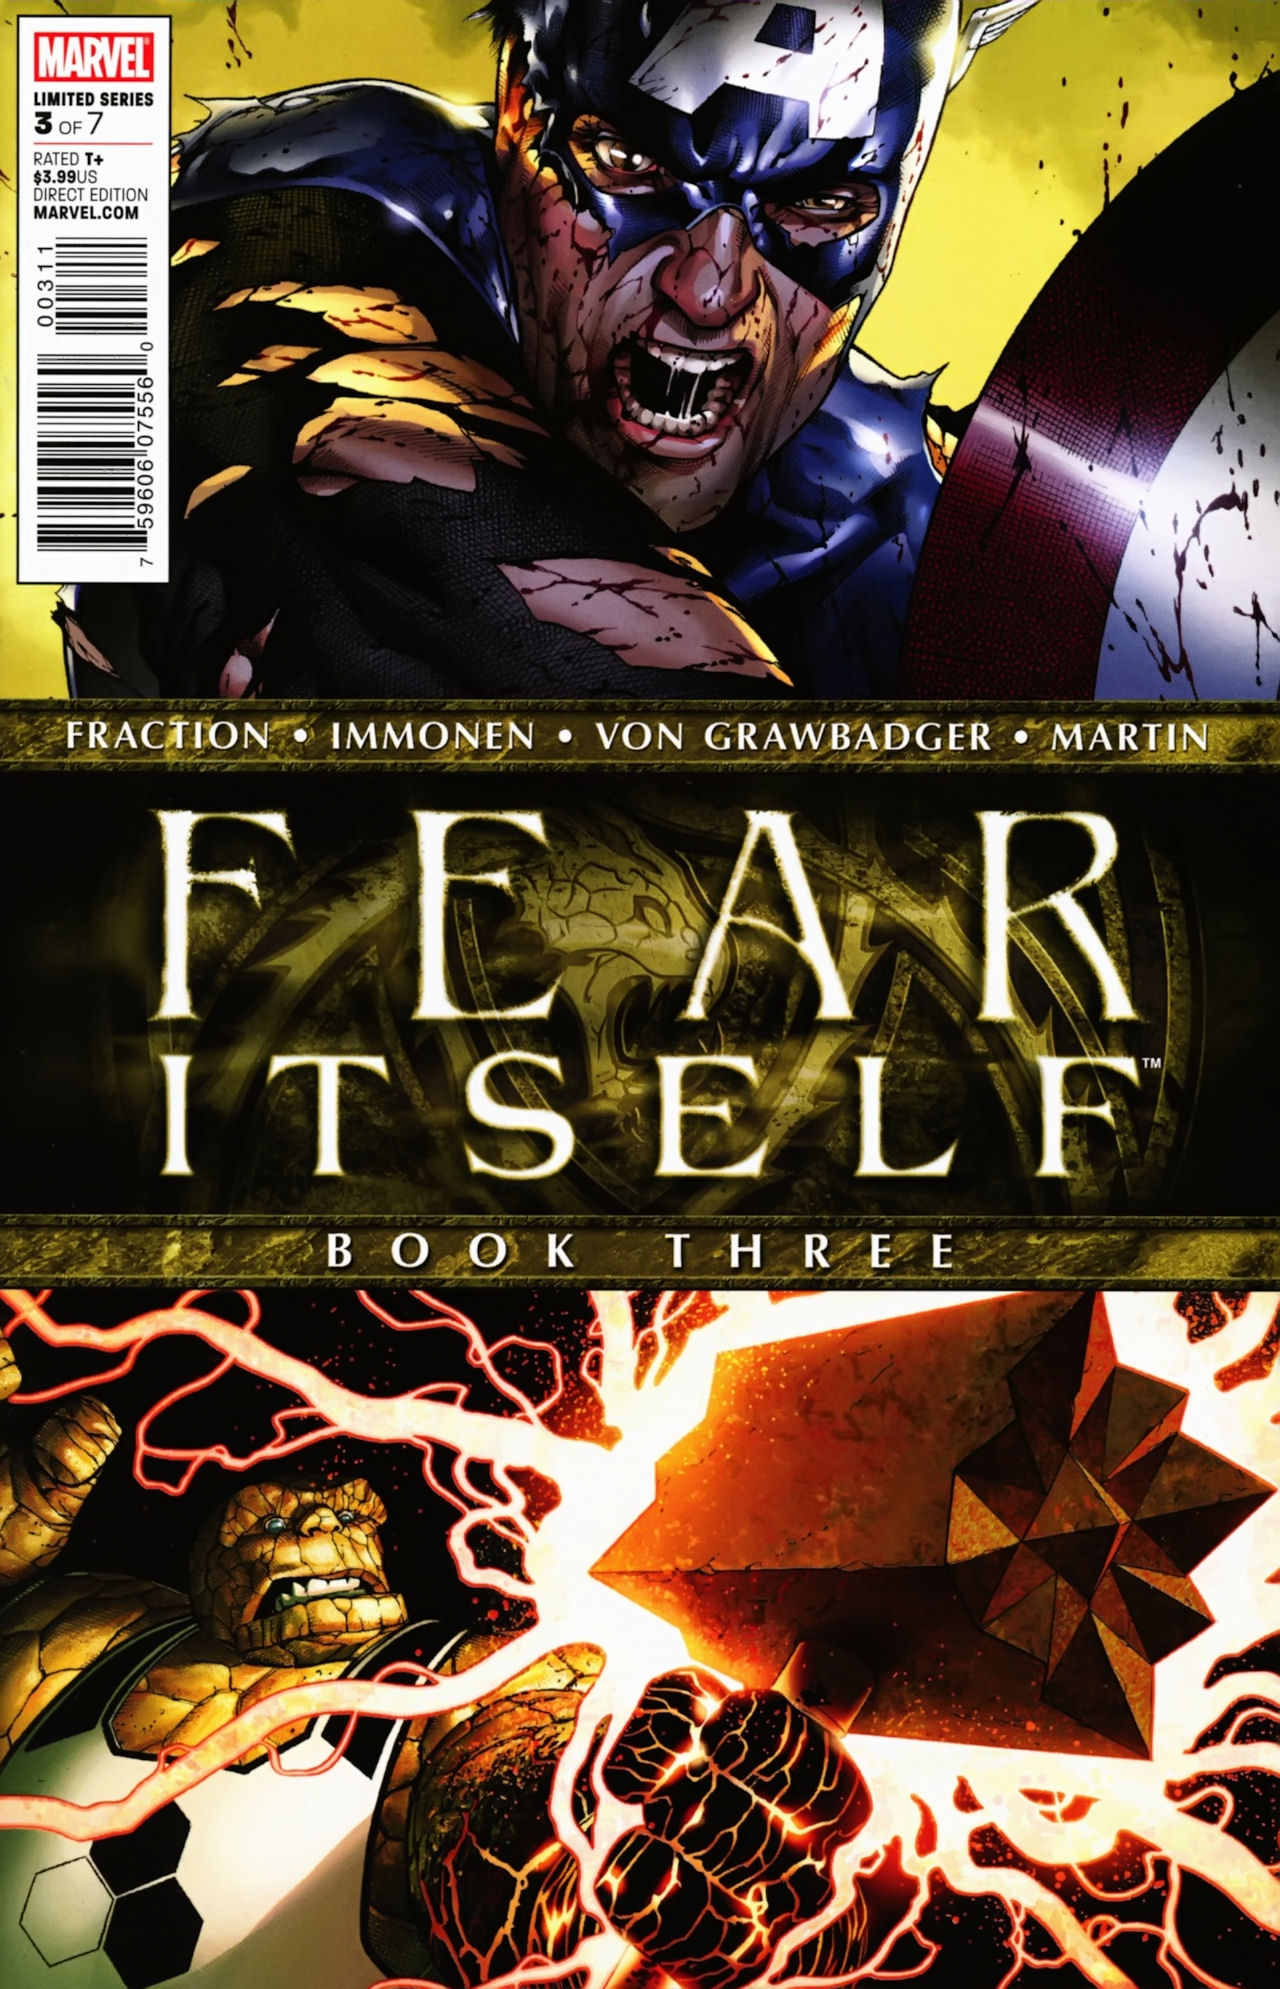 Copertina di Fear Itself 3 del 2011, di Steve McNiven